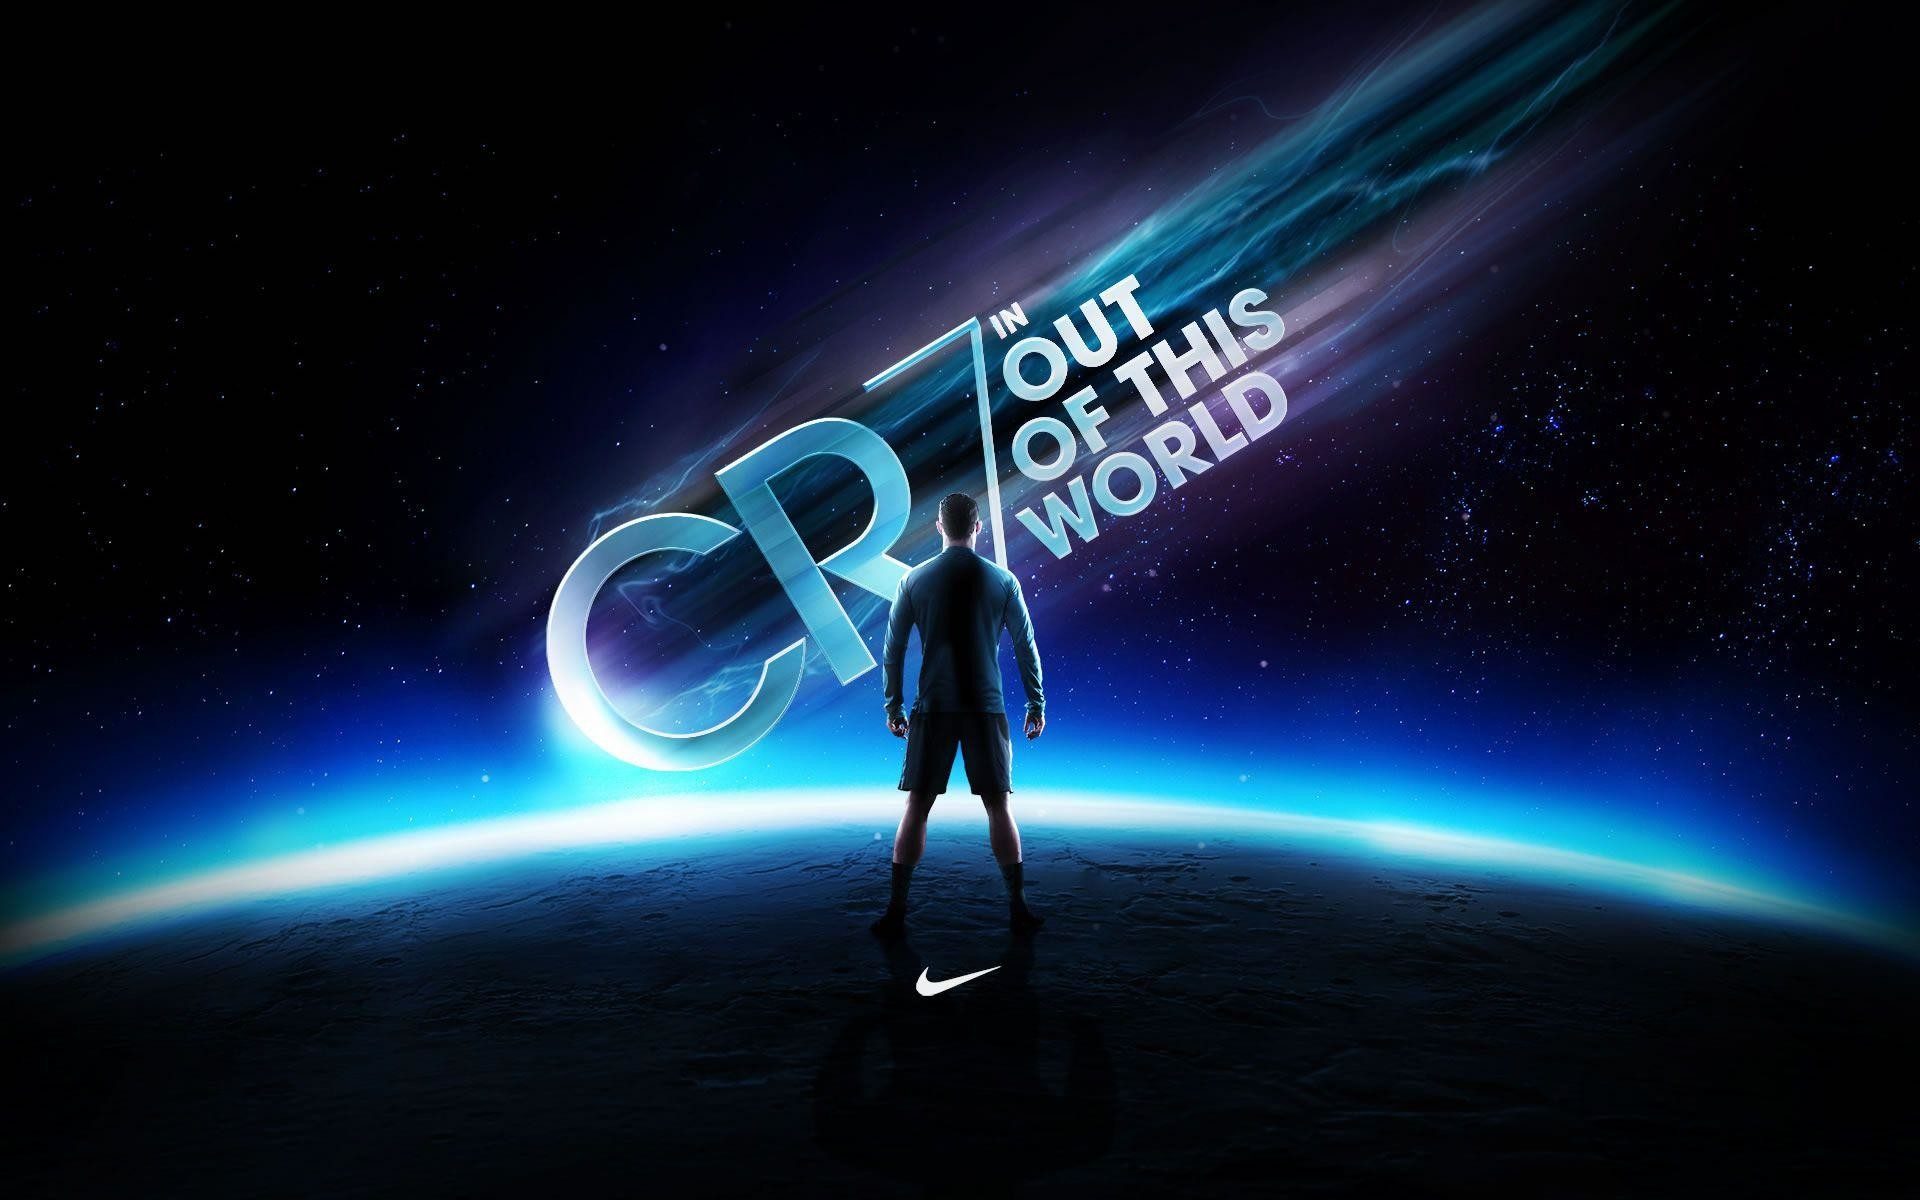 """CR7: """"Out of this world"""" Nike Wallpaper – Cristiano Ronaldo Wallpapers"""